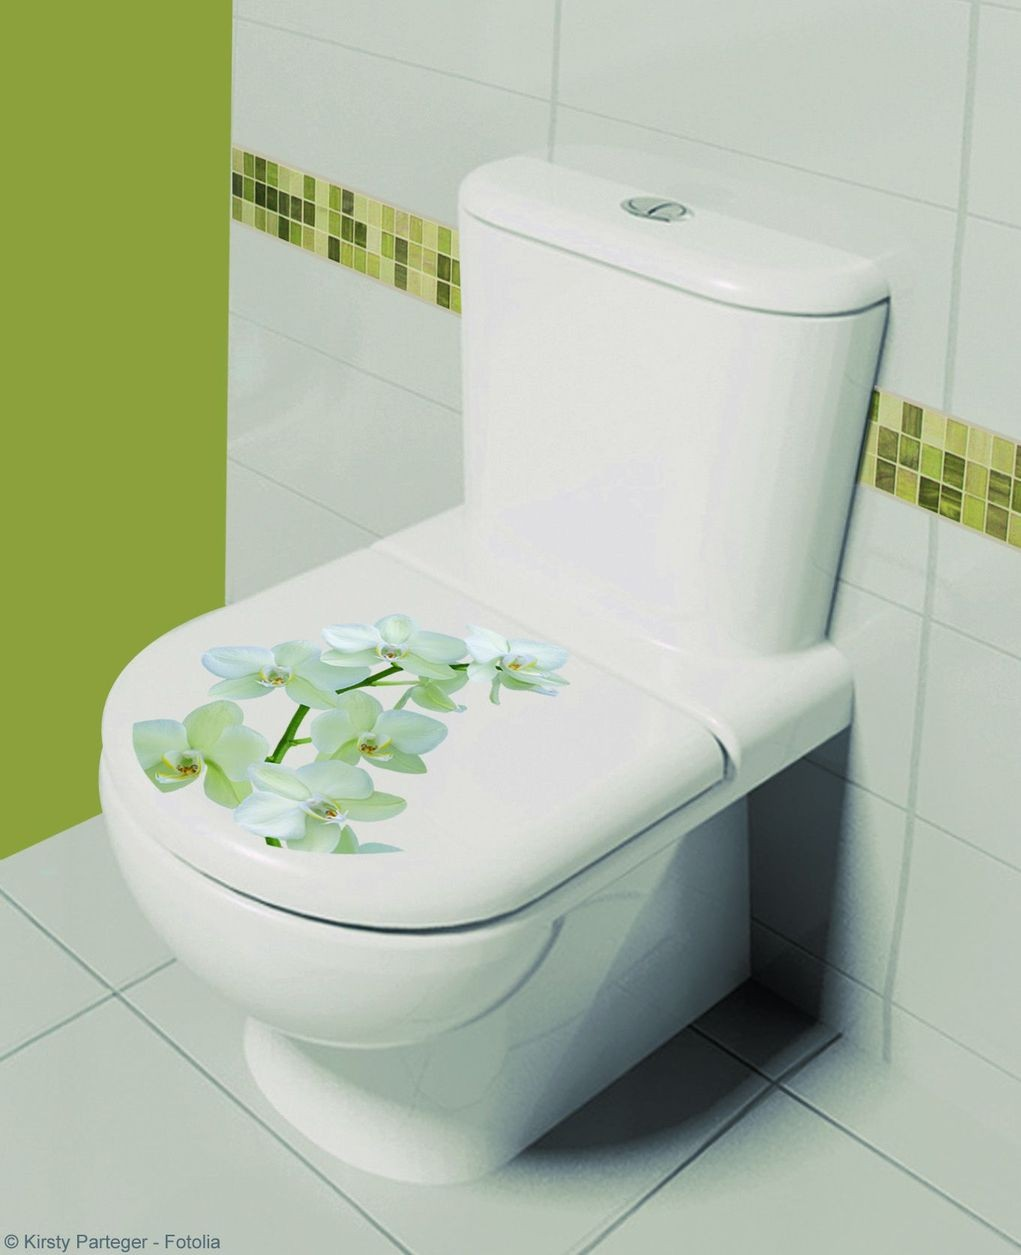 D coration abattant wc et stickers cuvette wc 97 - Stickers abattant wc ...